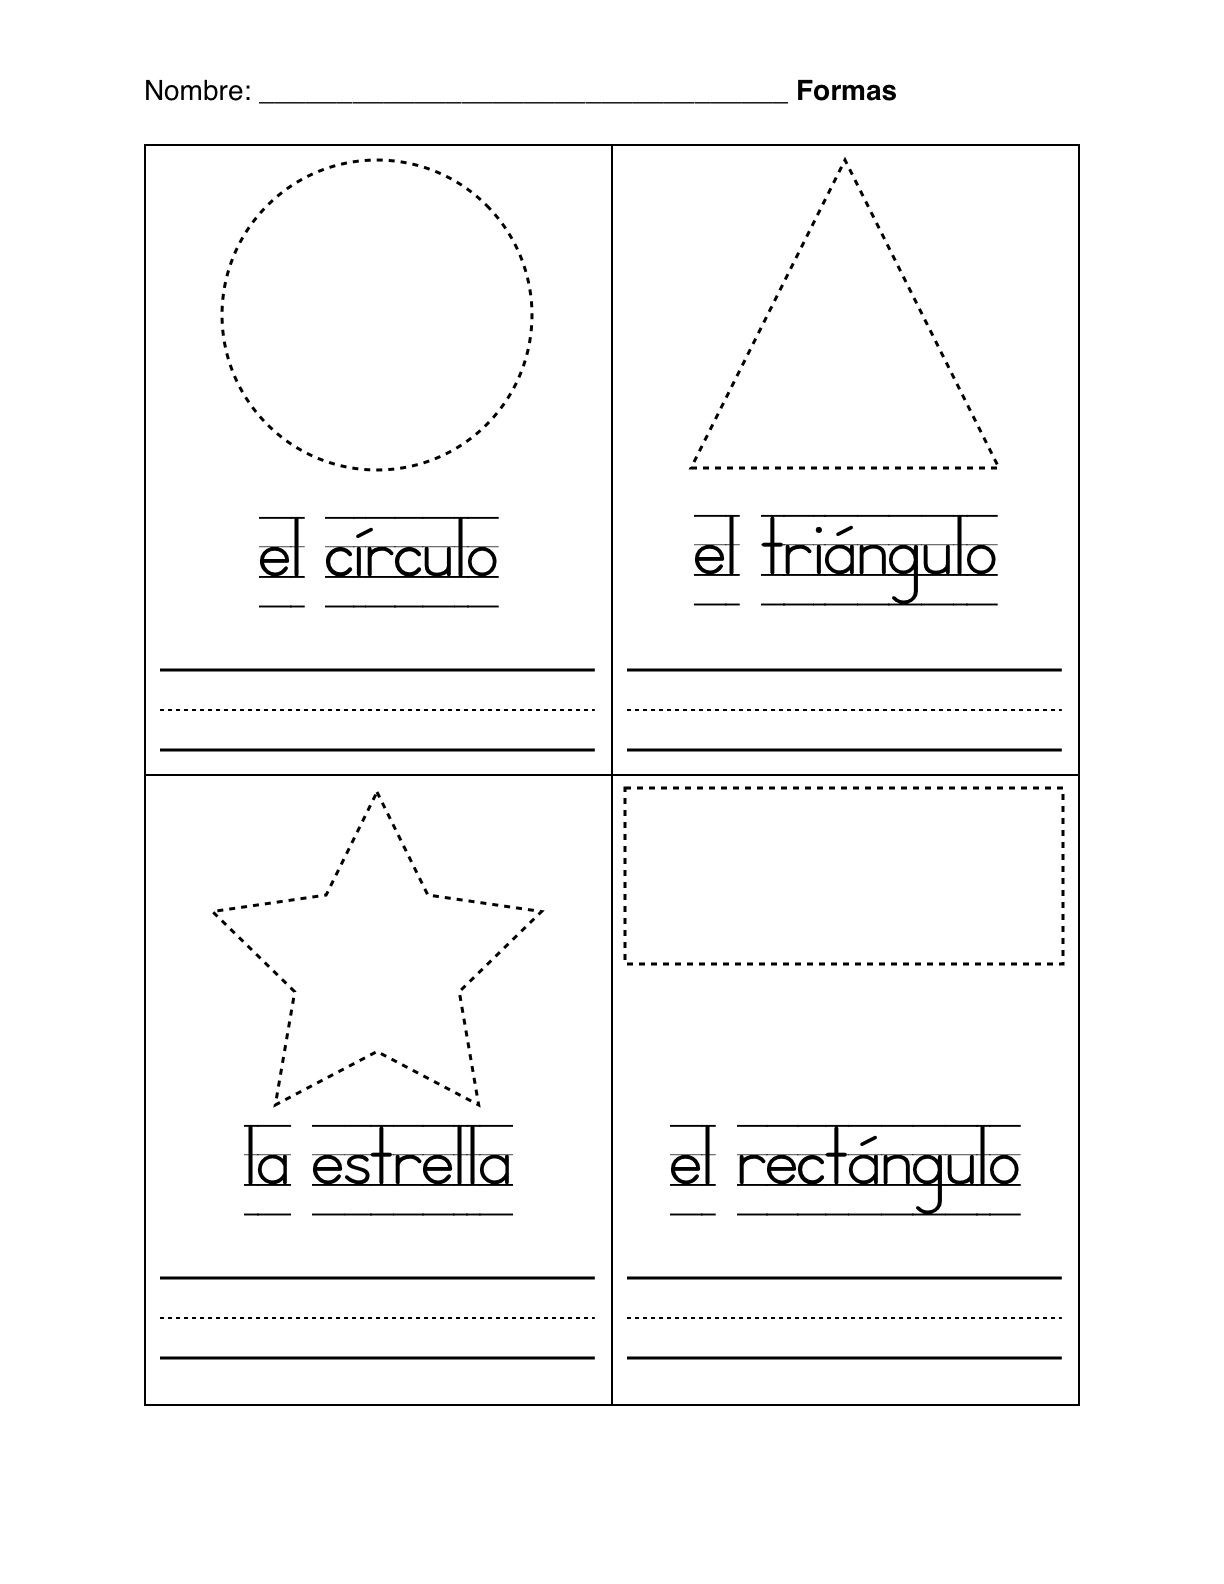 worksheet Free Printable Spanish Worksheets greetings for kids worksheet free esl printable worksheets made spanish kindergarten basic shapes in formas basicas worksheet